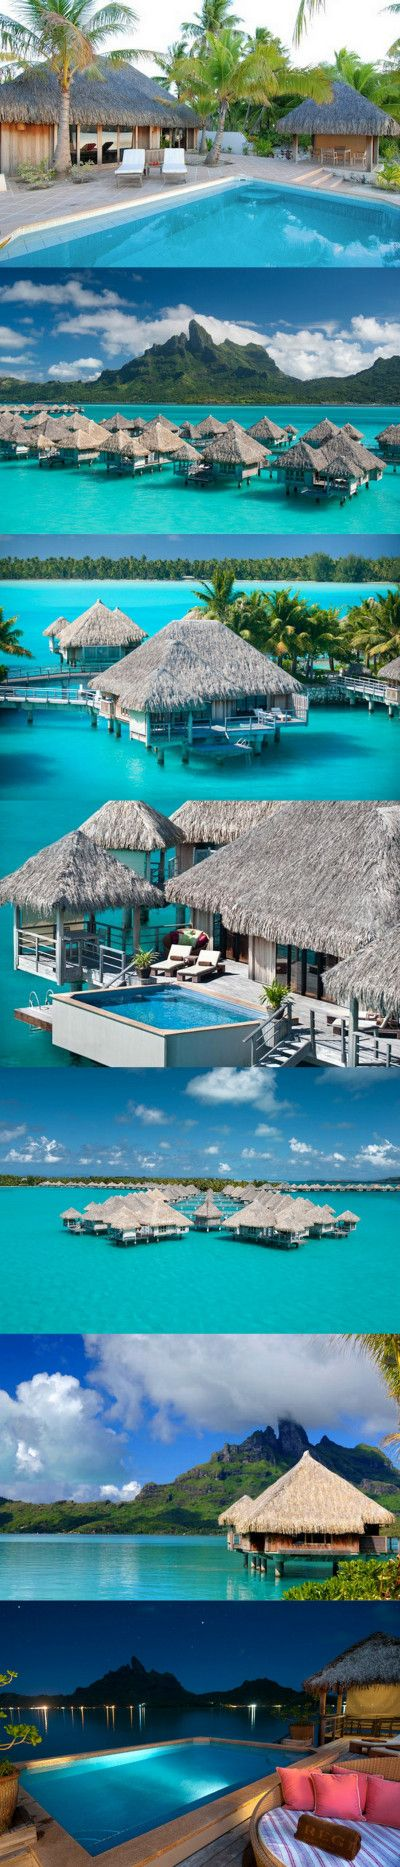 Once there you can relax and enjoy the beautiful water and views that Bora Bora offers